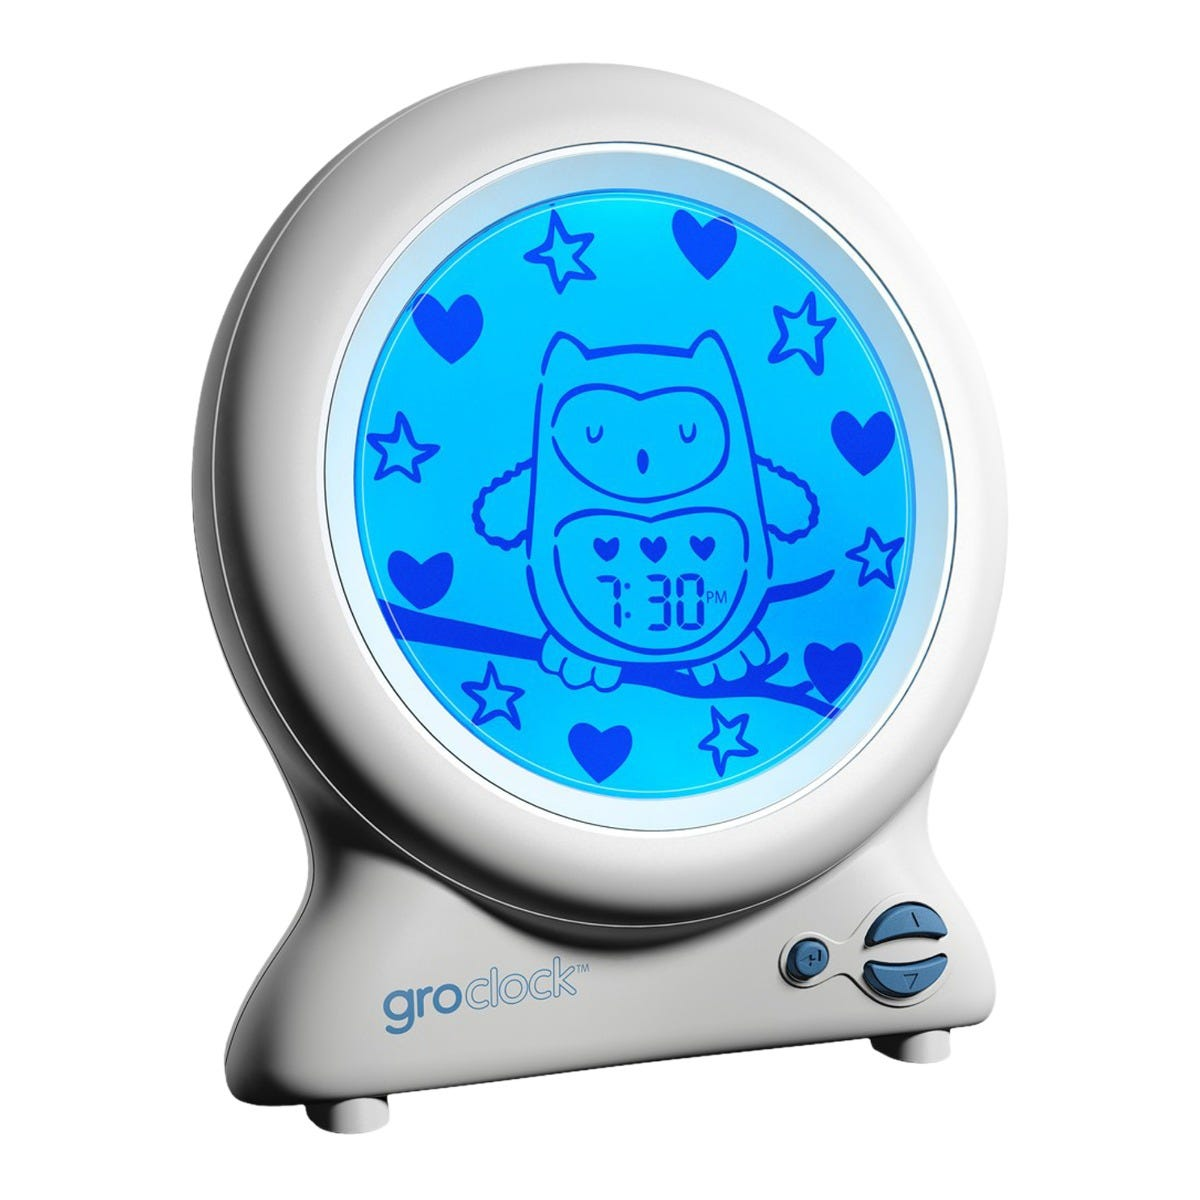 Ollie the Owl Groclock - night time screen